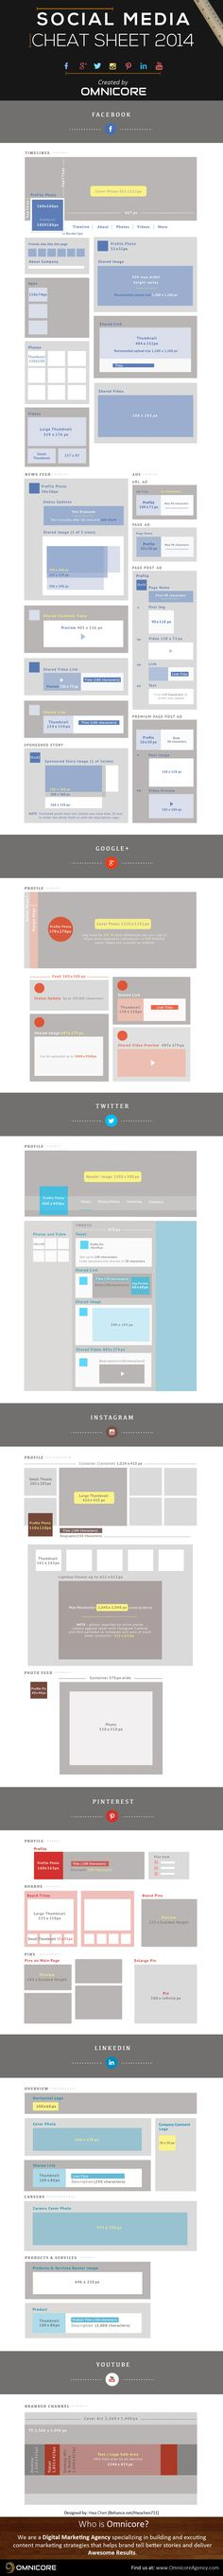 #socialmedia #infographic #marketing #bumblebeesocialmedia  GooglePlus, Twitter, YouTube, LinkedIn - Complete Social Media Sizing Cheat Sheet - infographic